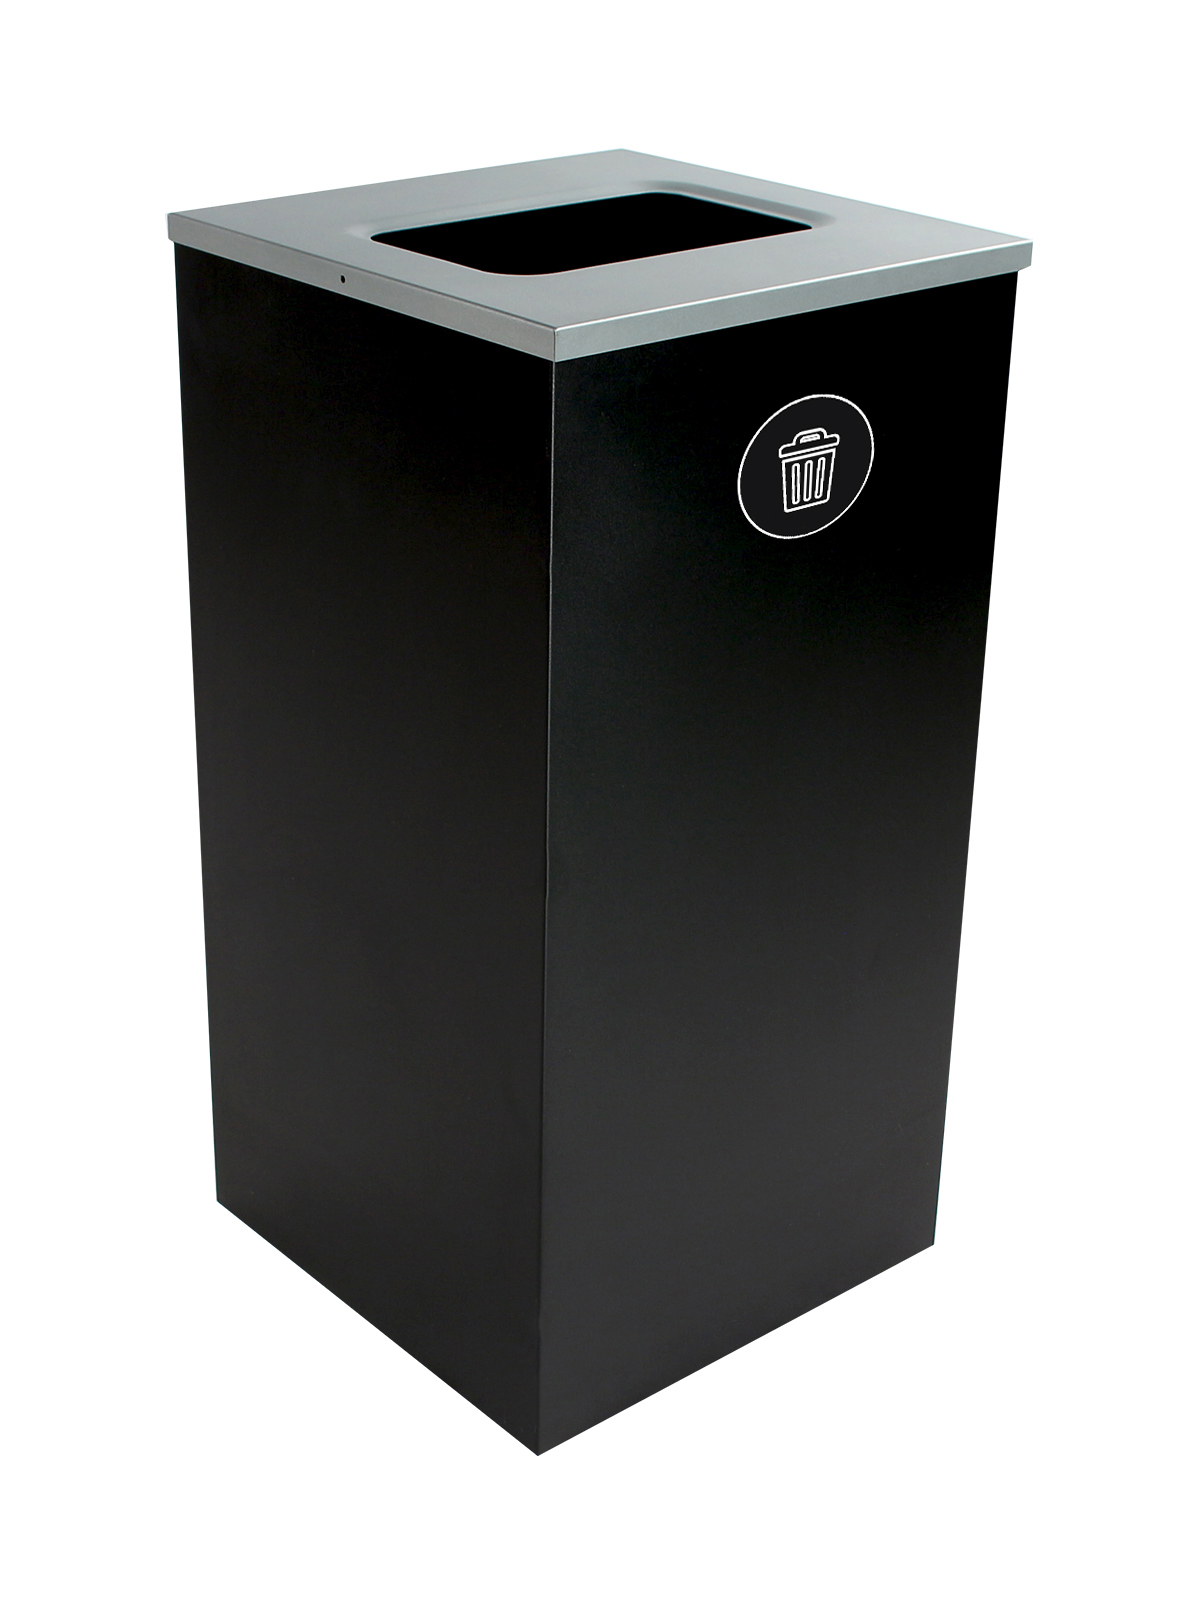 SPECTRUM - Single - Cube - Waste - Full - Black